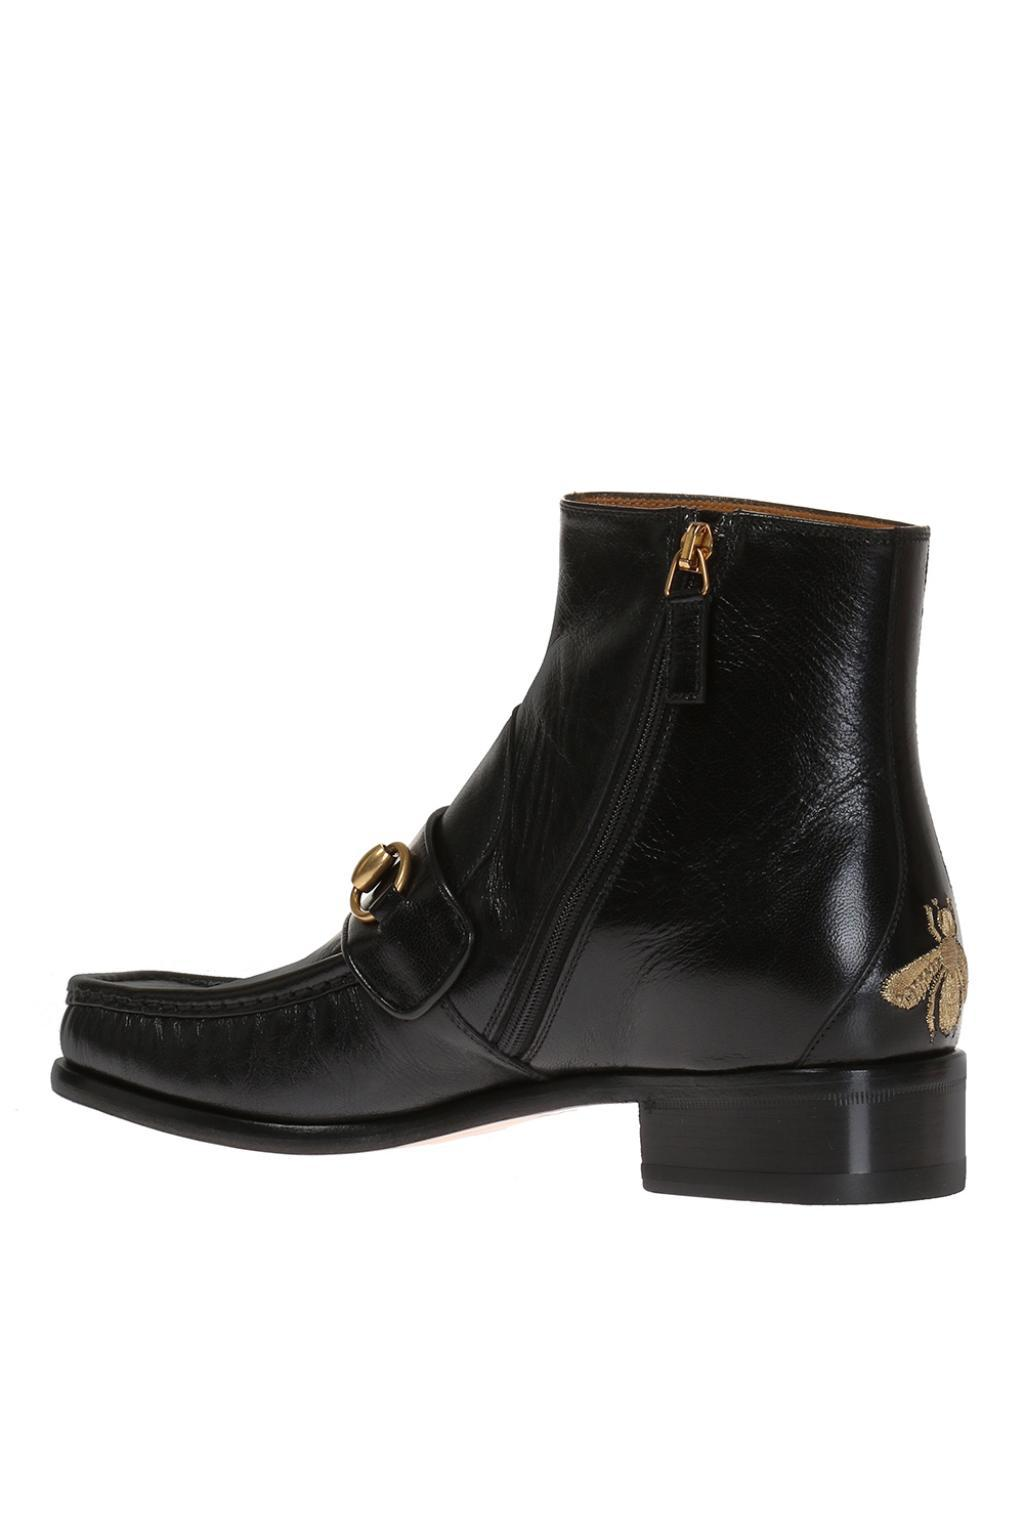 19347ec9056 Gucci Bee-embroidered Ankle Boots in Black for Men - Lyst